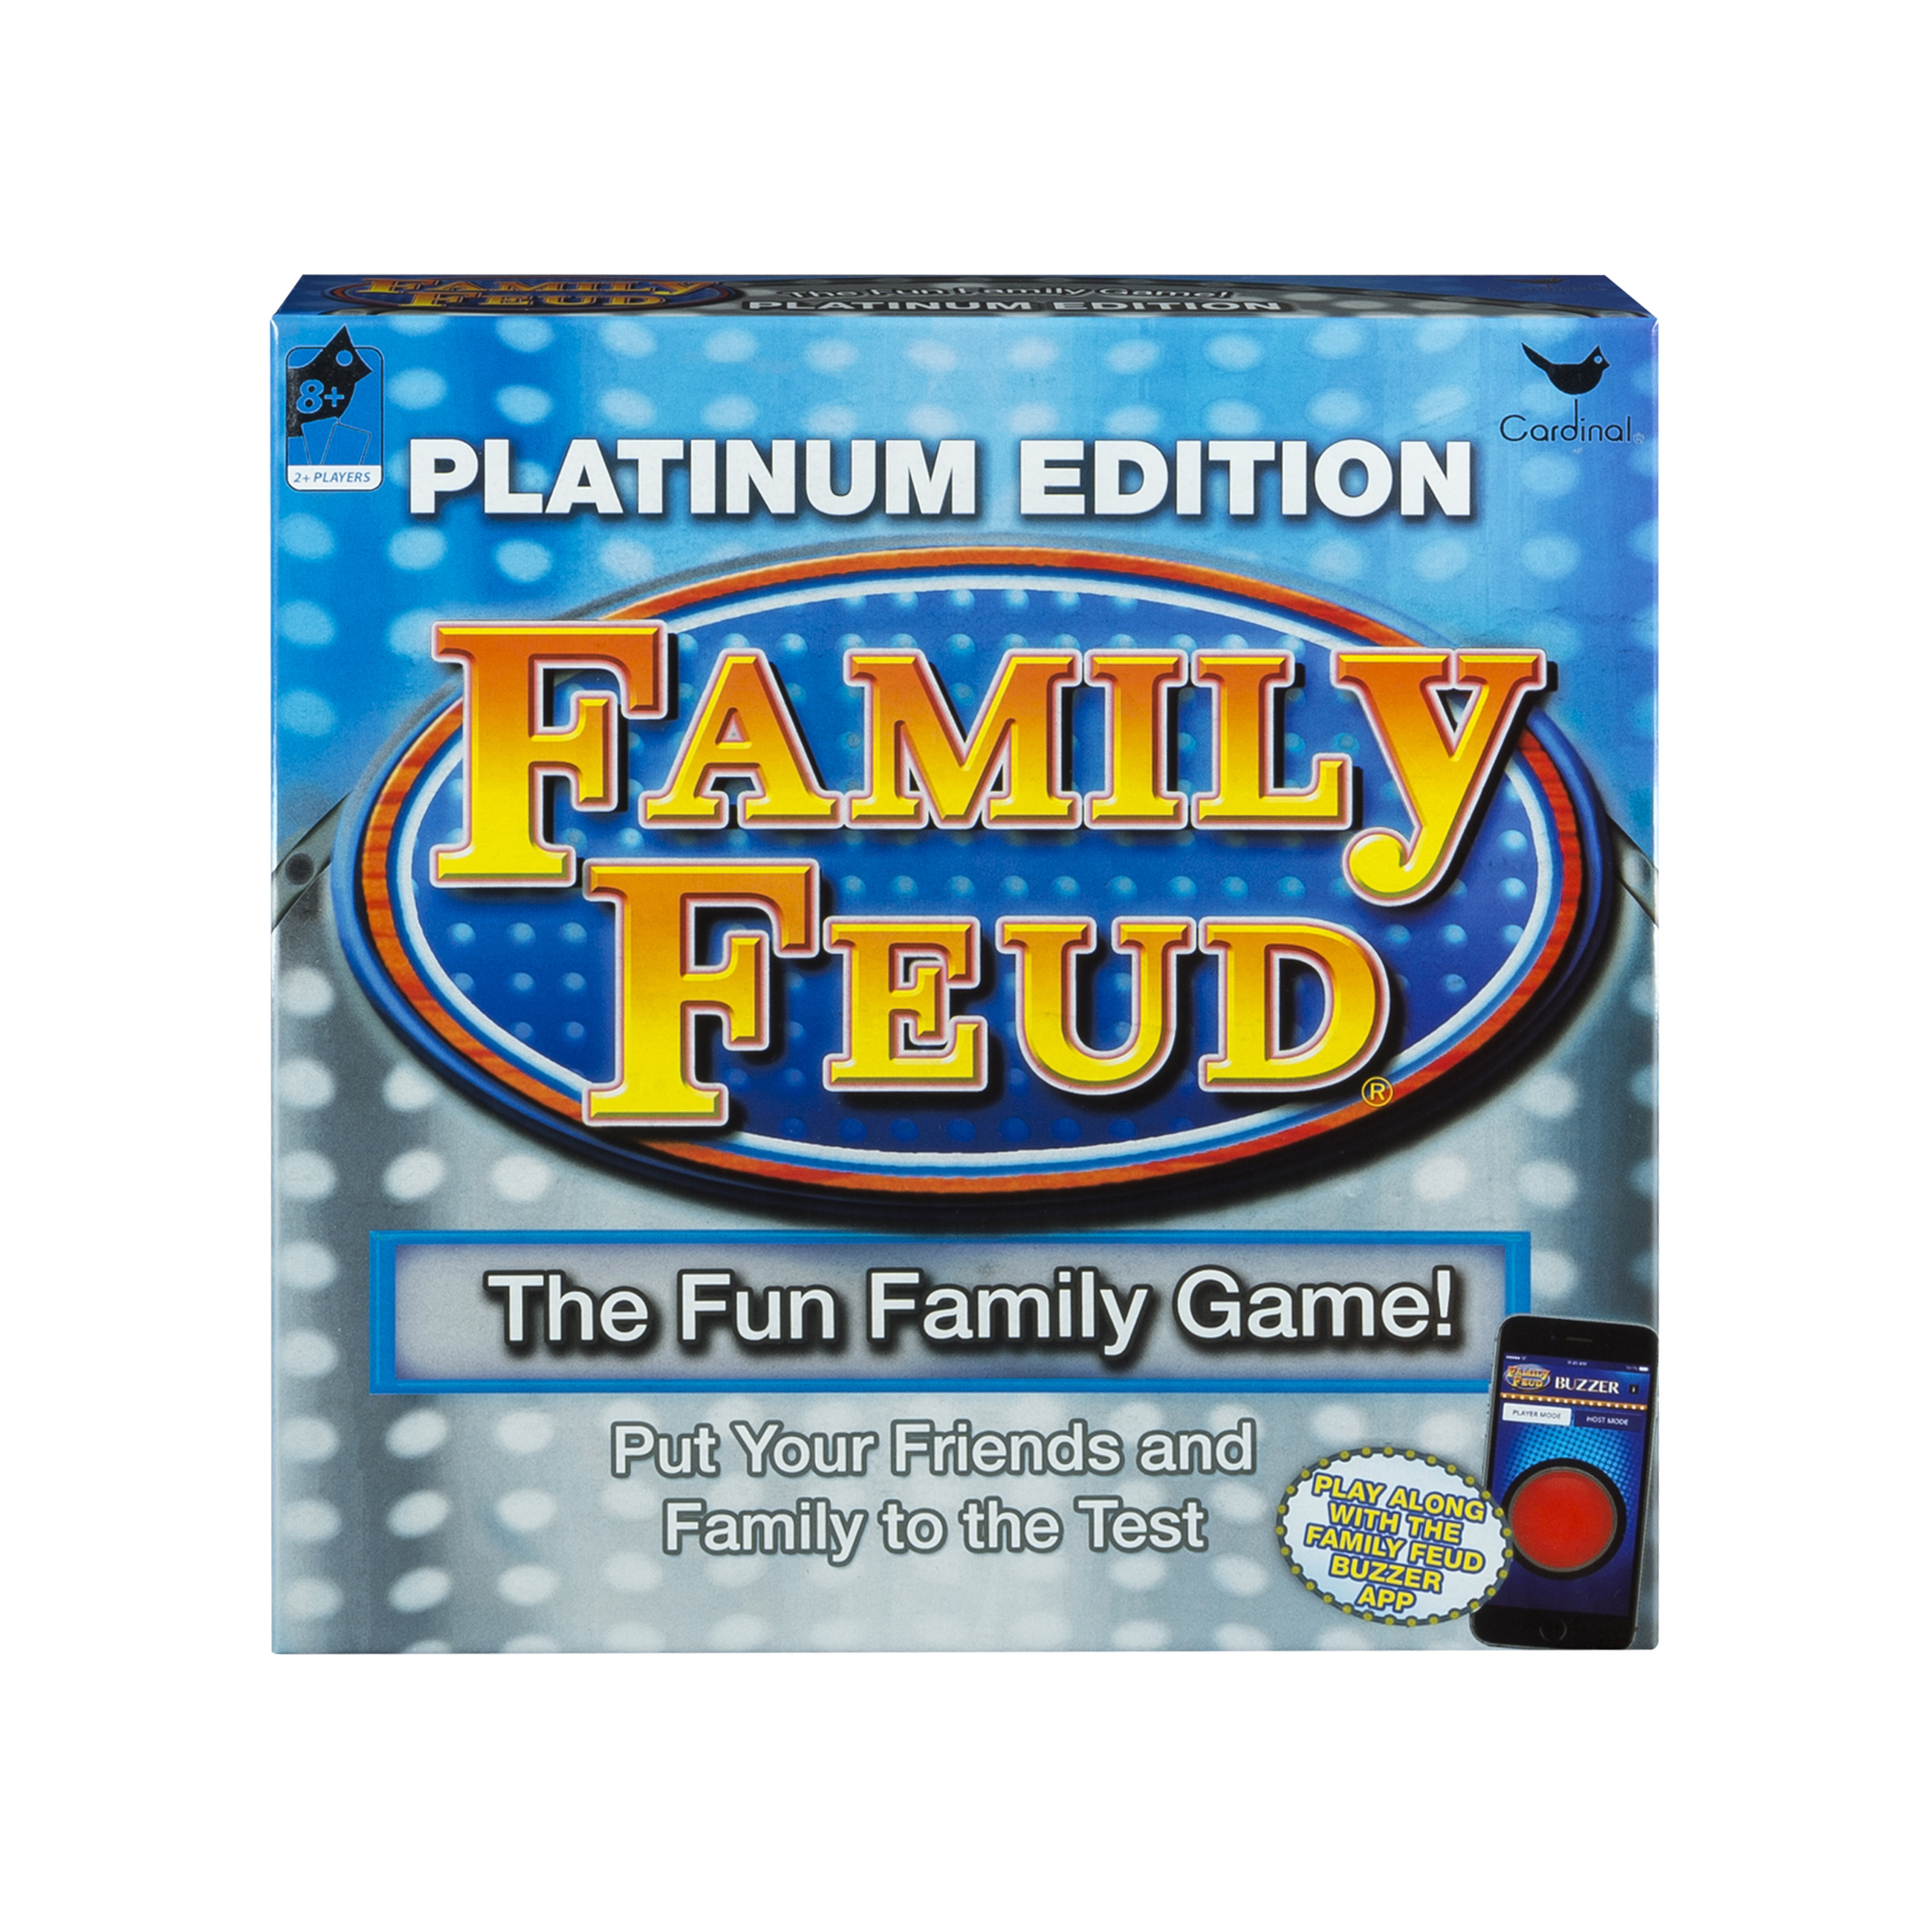 Cardinal Games Platinum Edition Family Feud Board Game by Cardinal Games